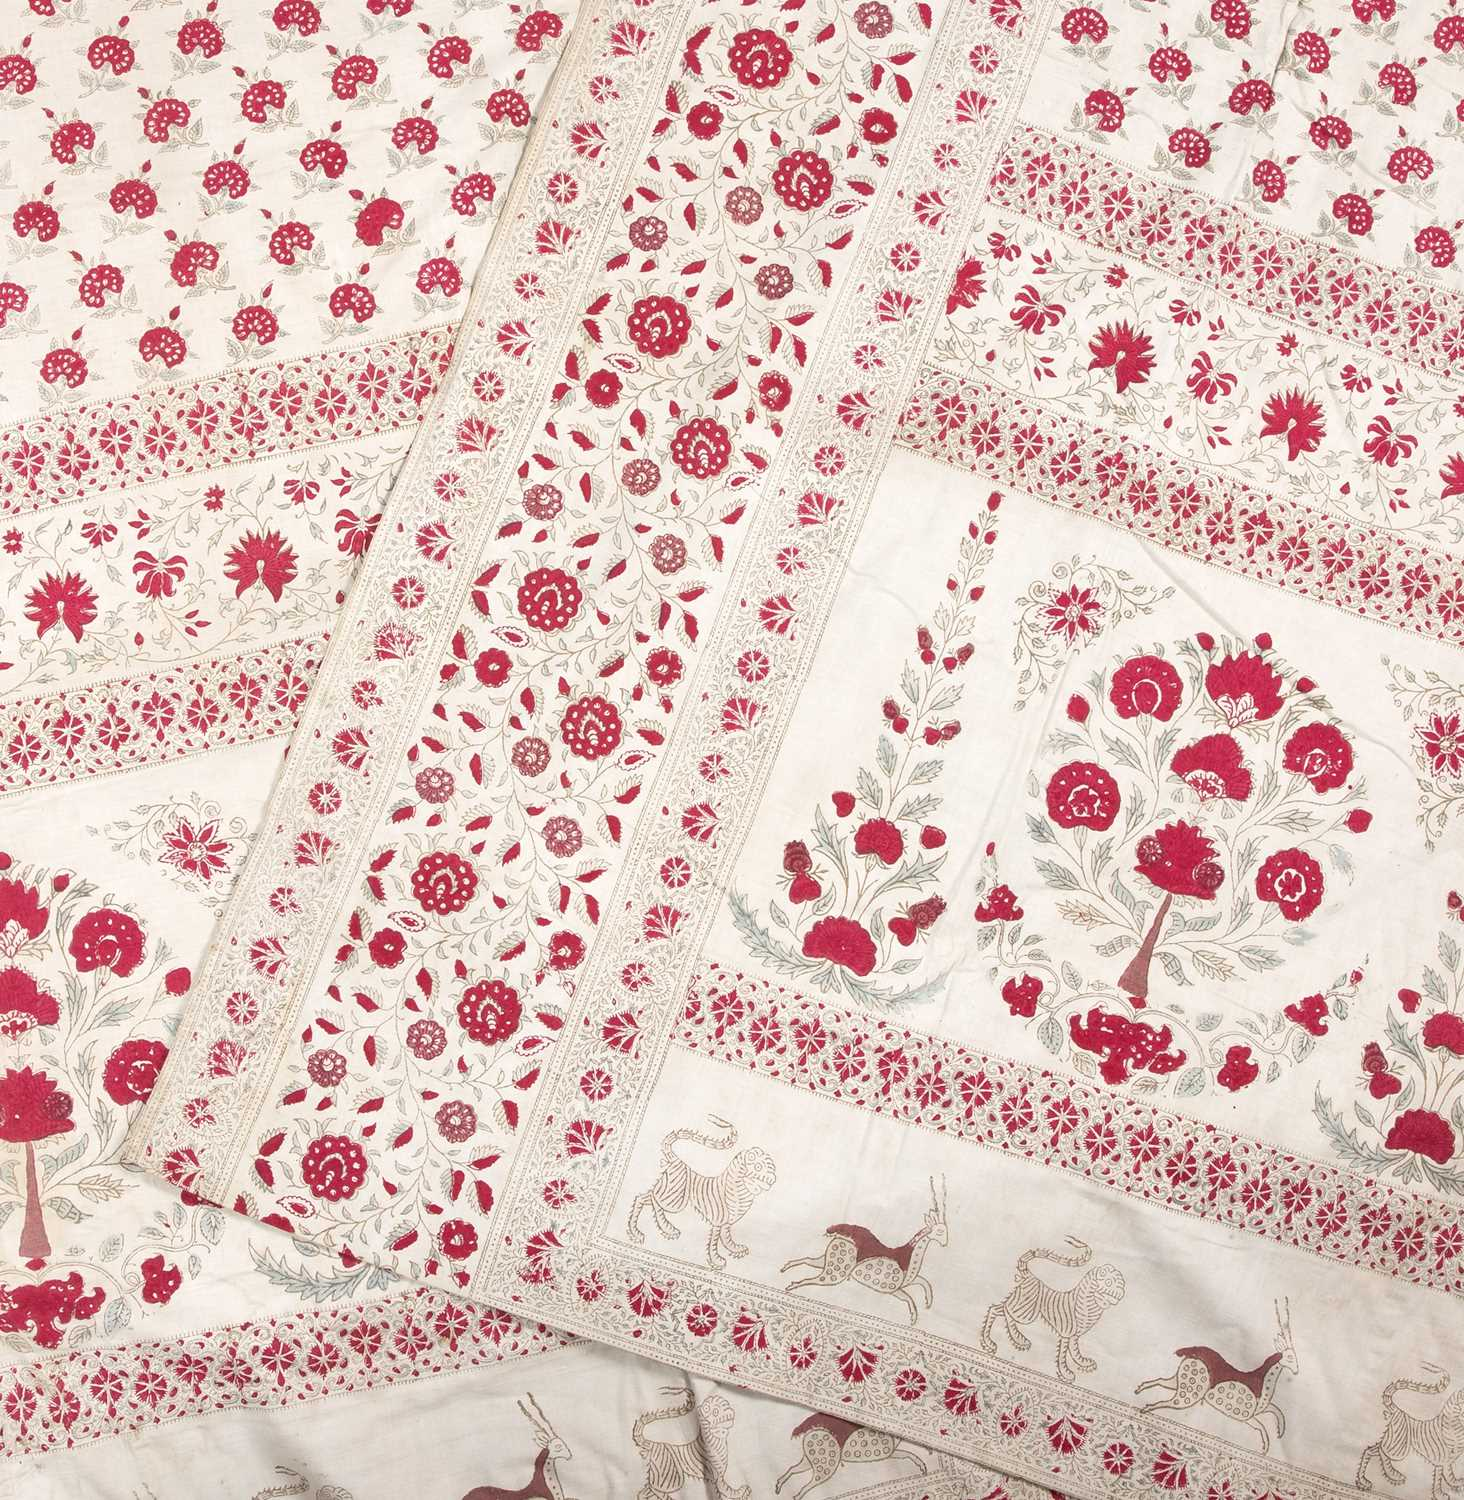 A pair of Indian Kalamkari bird and animal wall hangings forming one panel with red flower printed